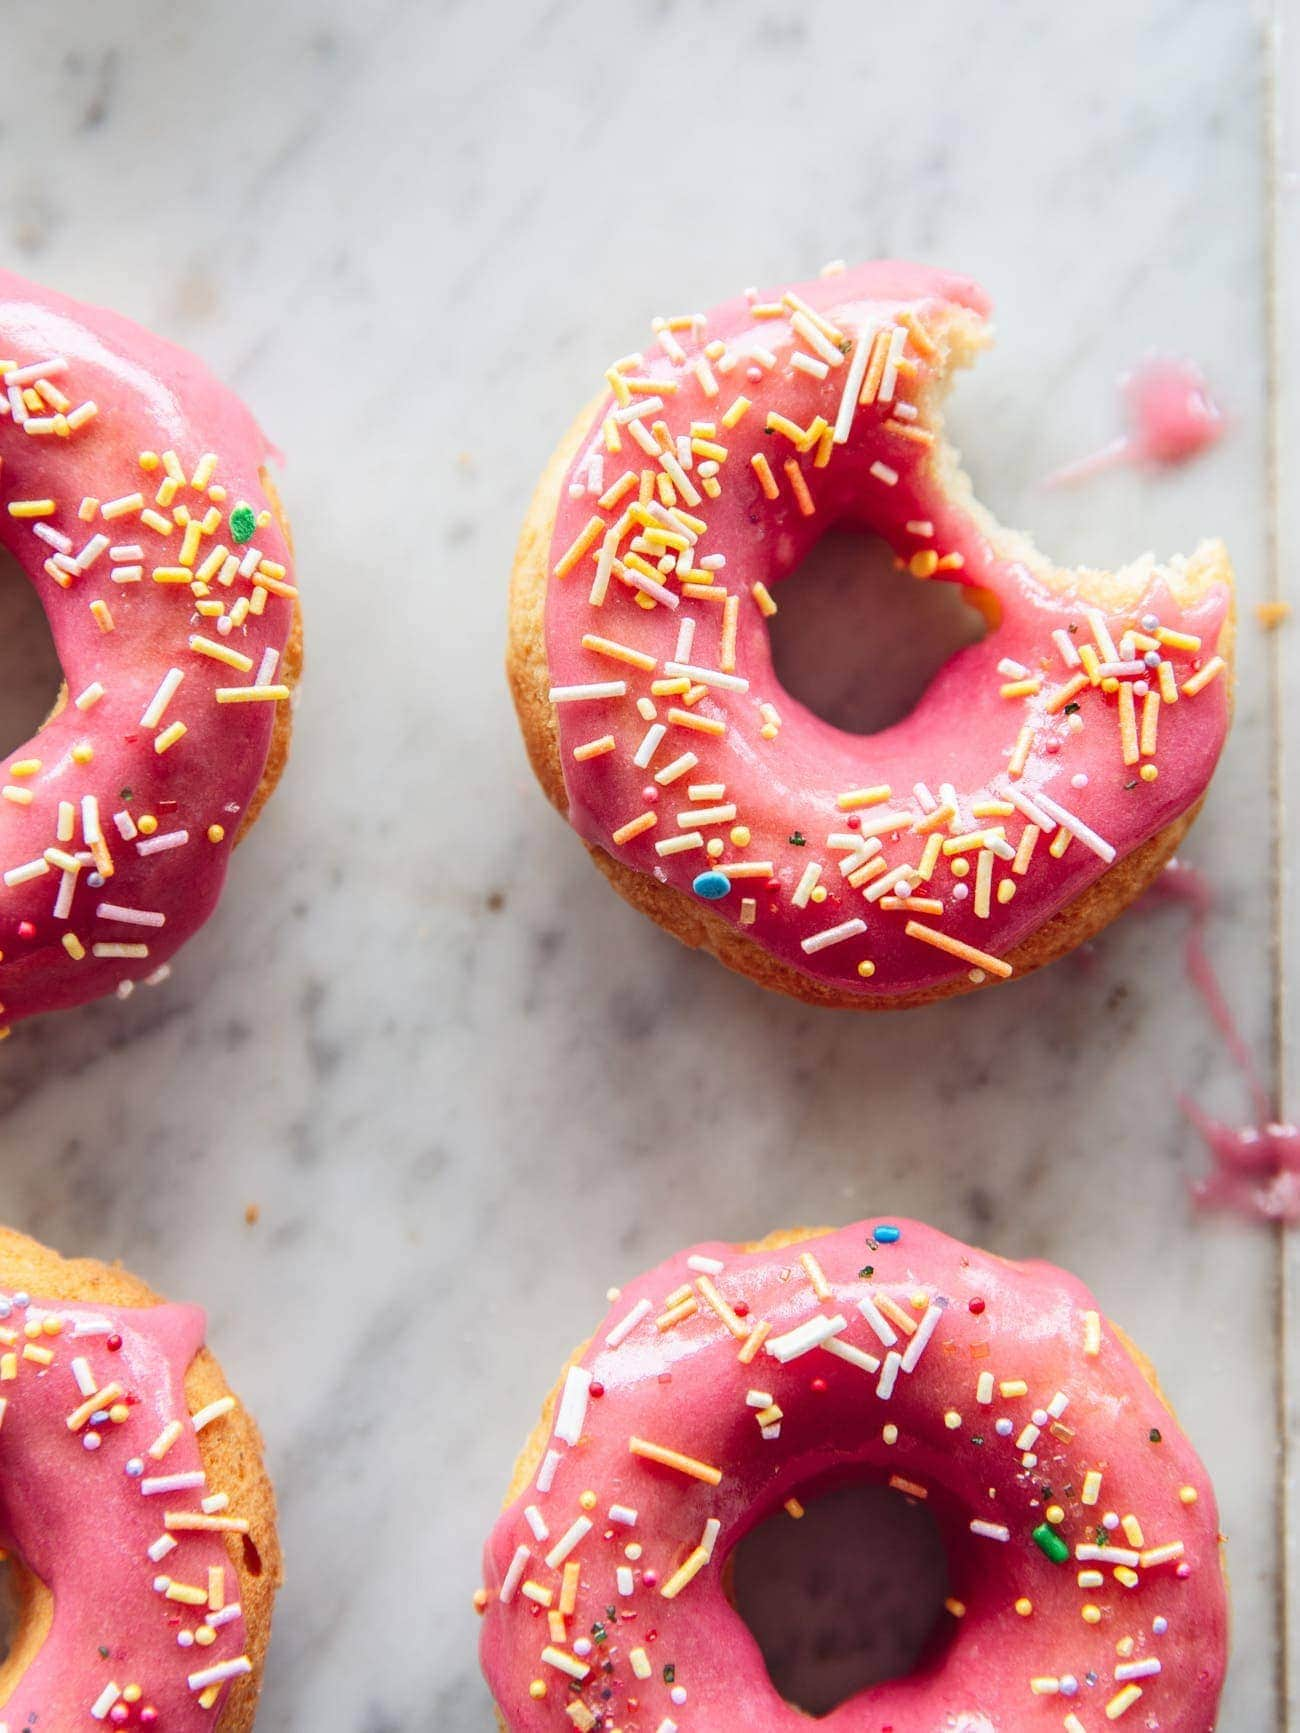 Rhubarb Baked Doughnuts by food blogger Izy Hossack